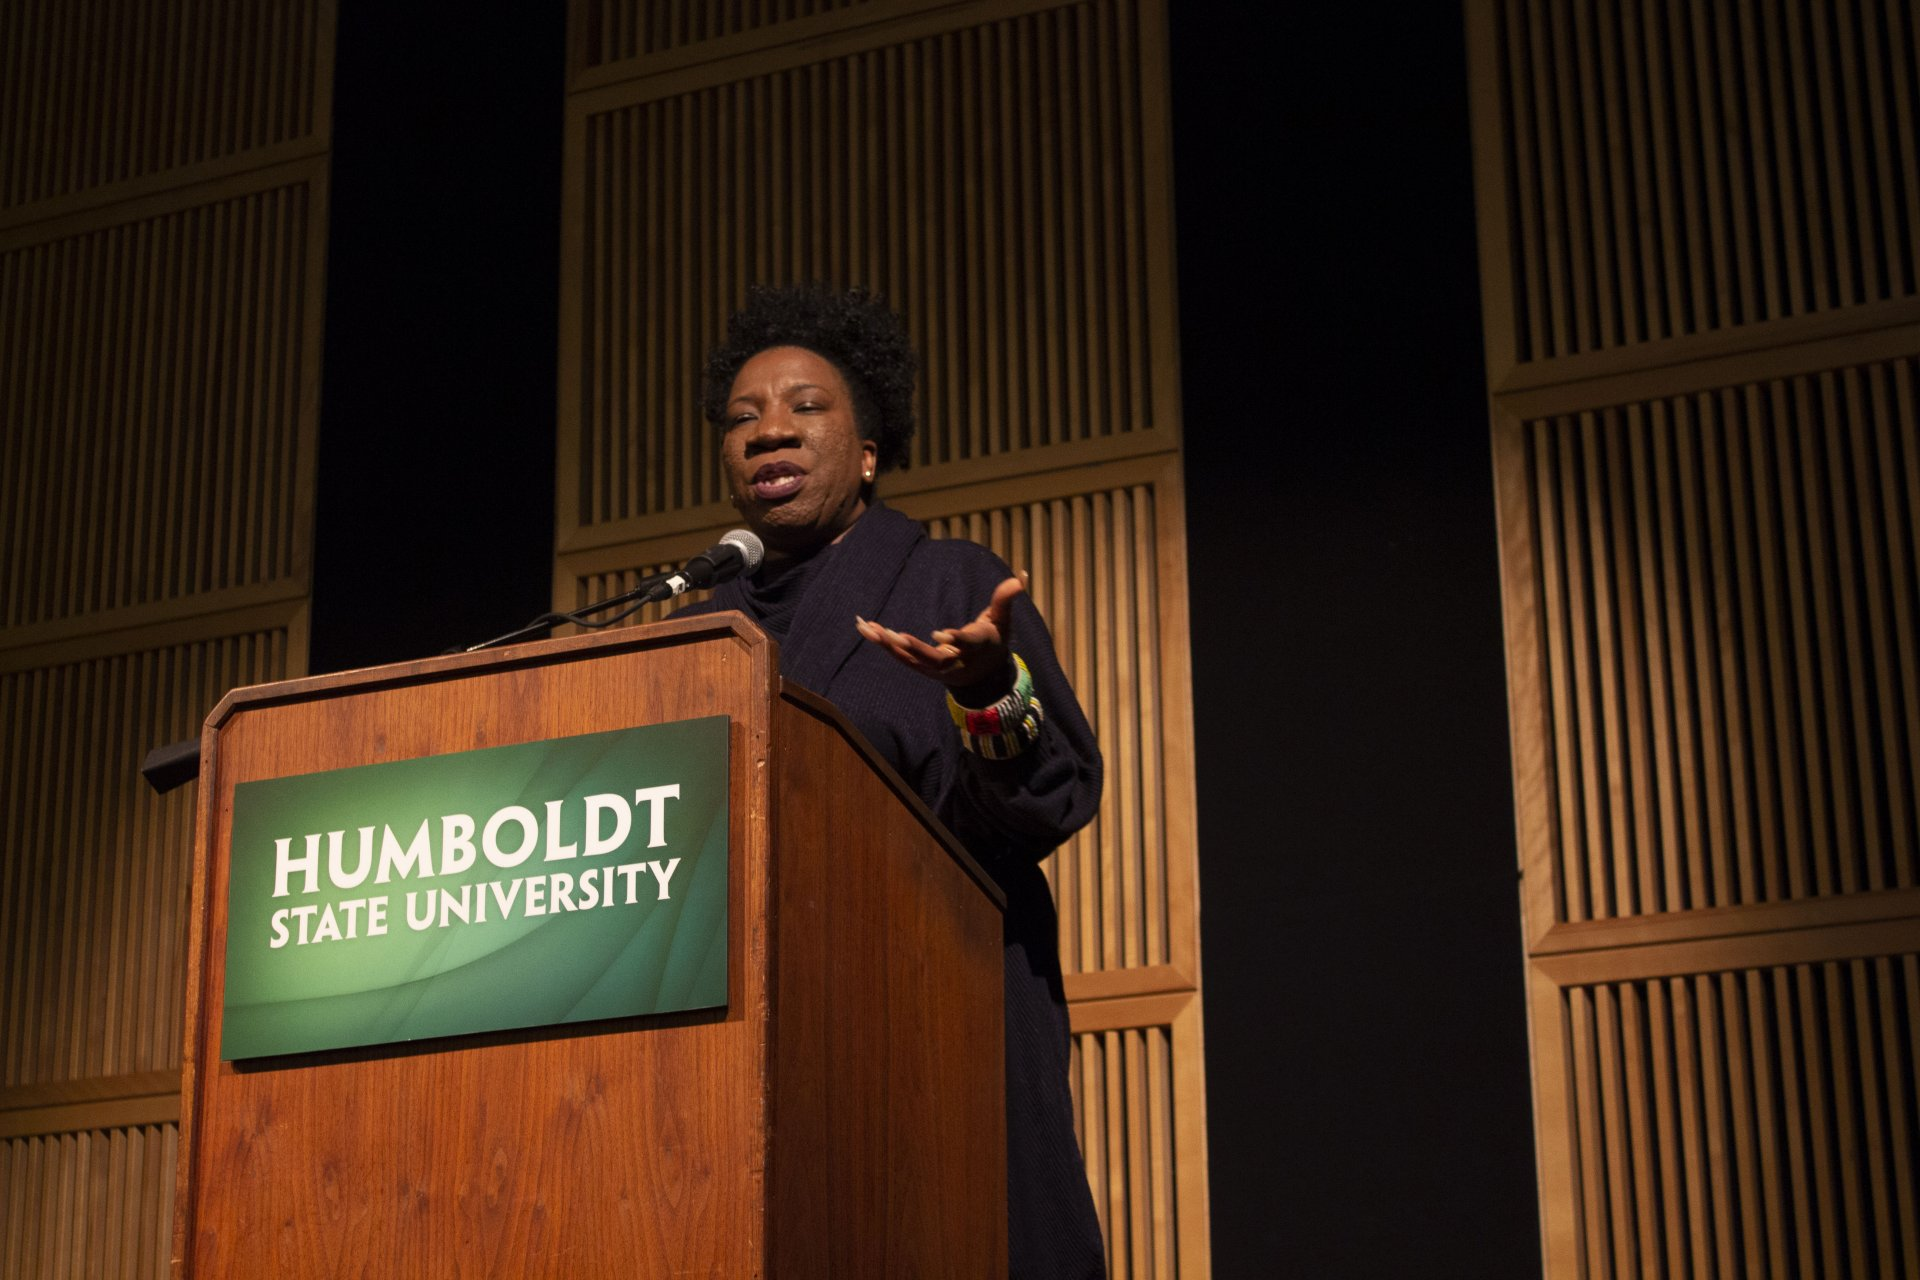 Tanara Burke, founder of the #metoo movement, speaks to a sold out crowd at HSU on Sunday Feb. 3. | Photo by Tony Wallin